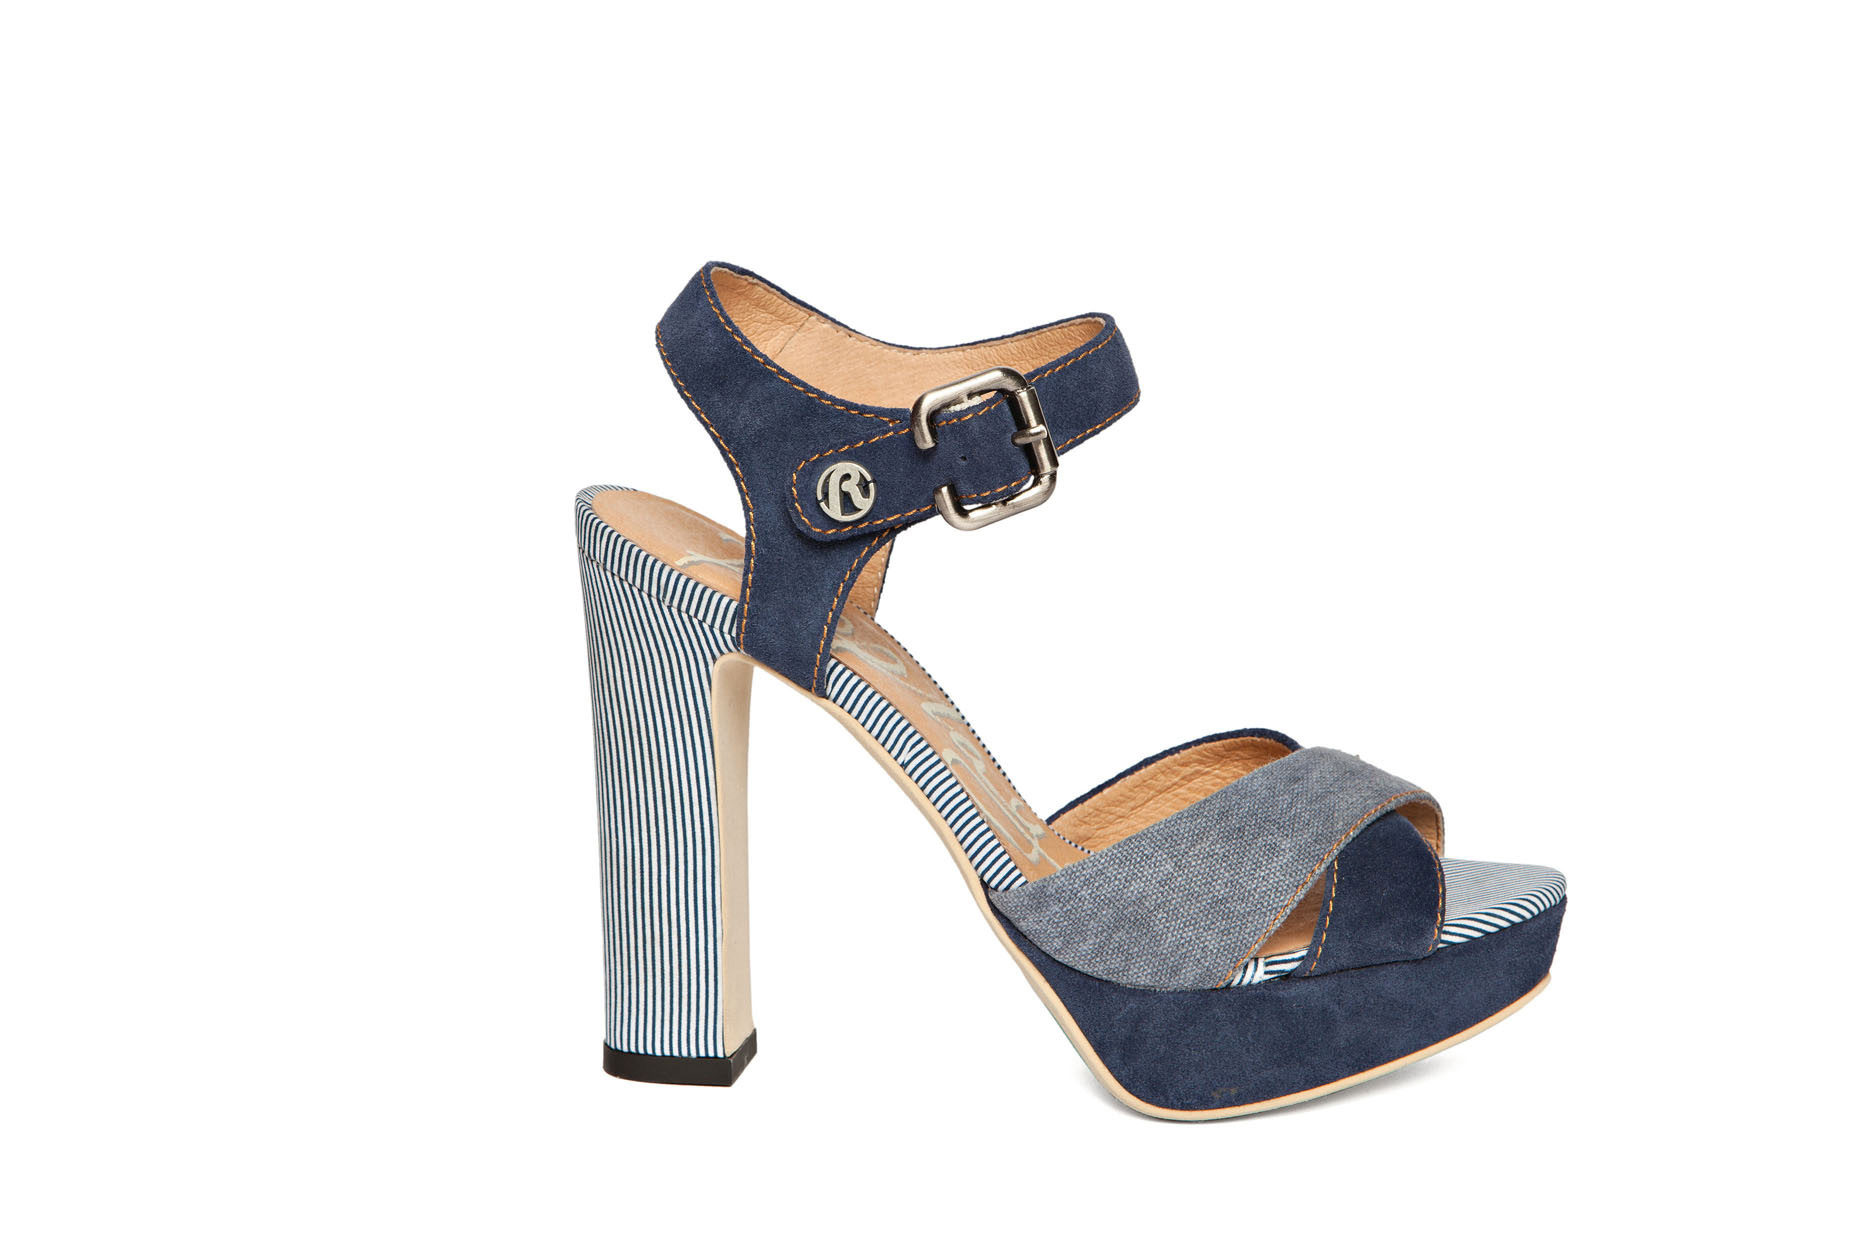 35c62c7be0 Replay Magassarkú - Kimberly - rp680004l-0010 - Office Shoes ...